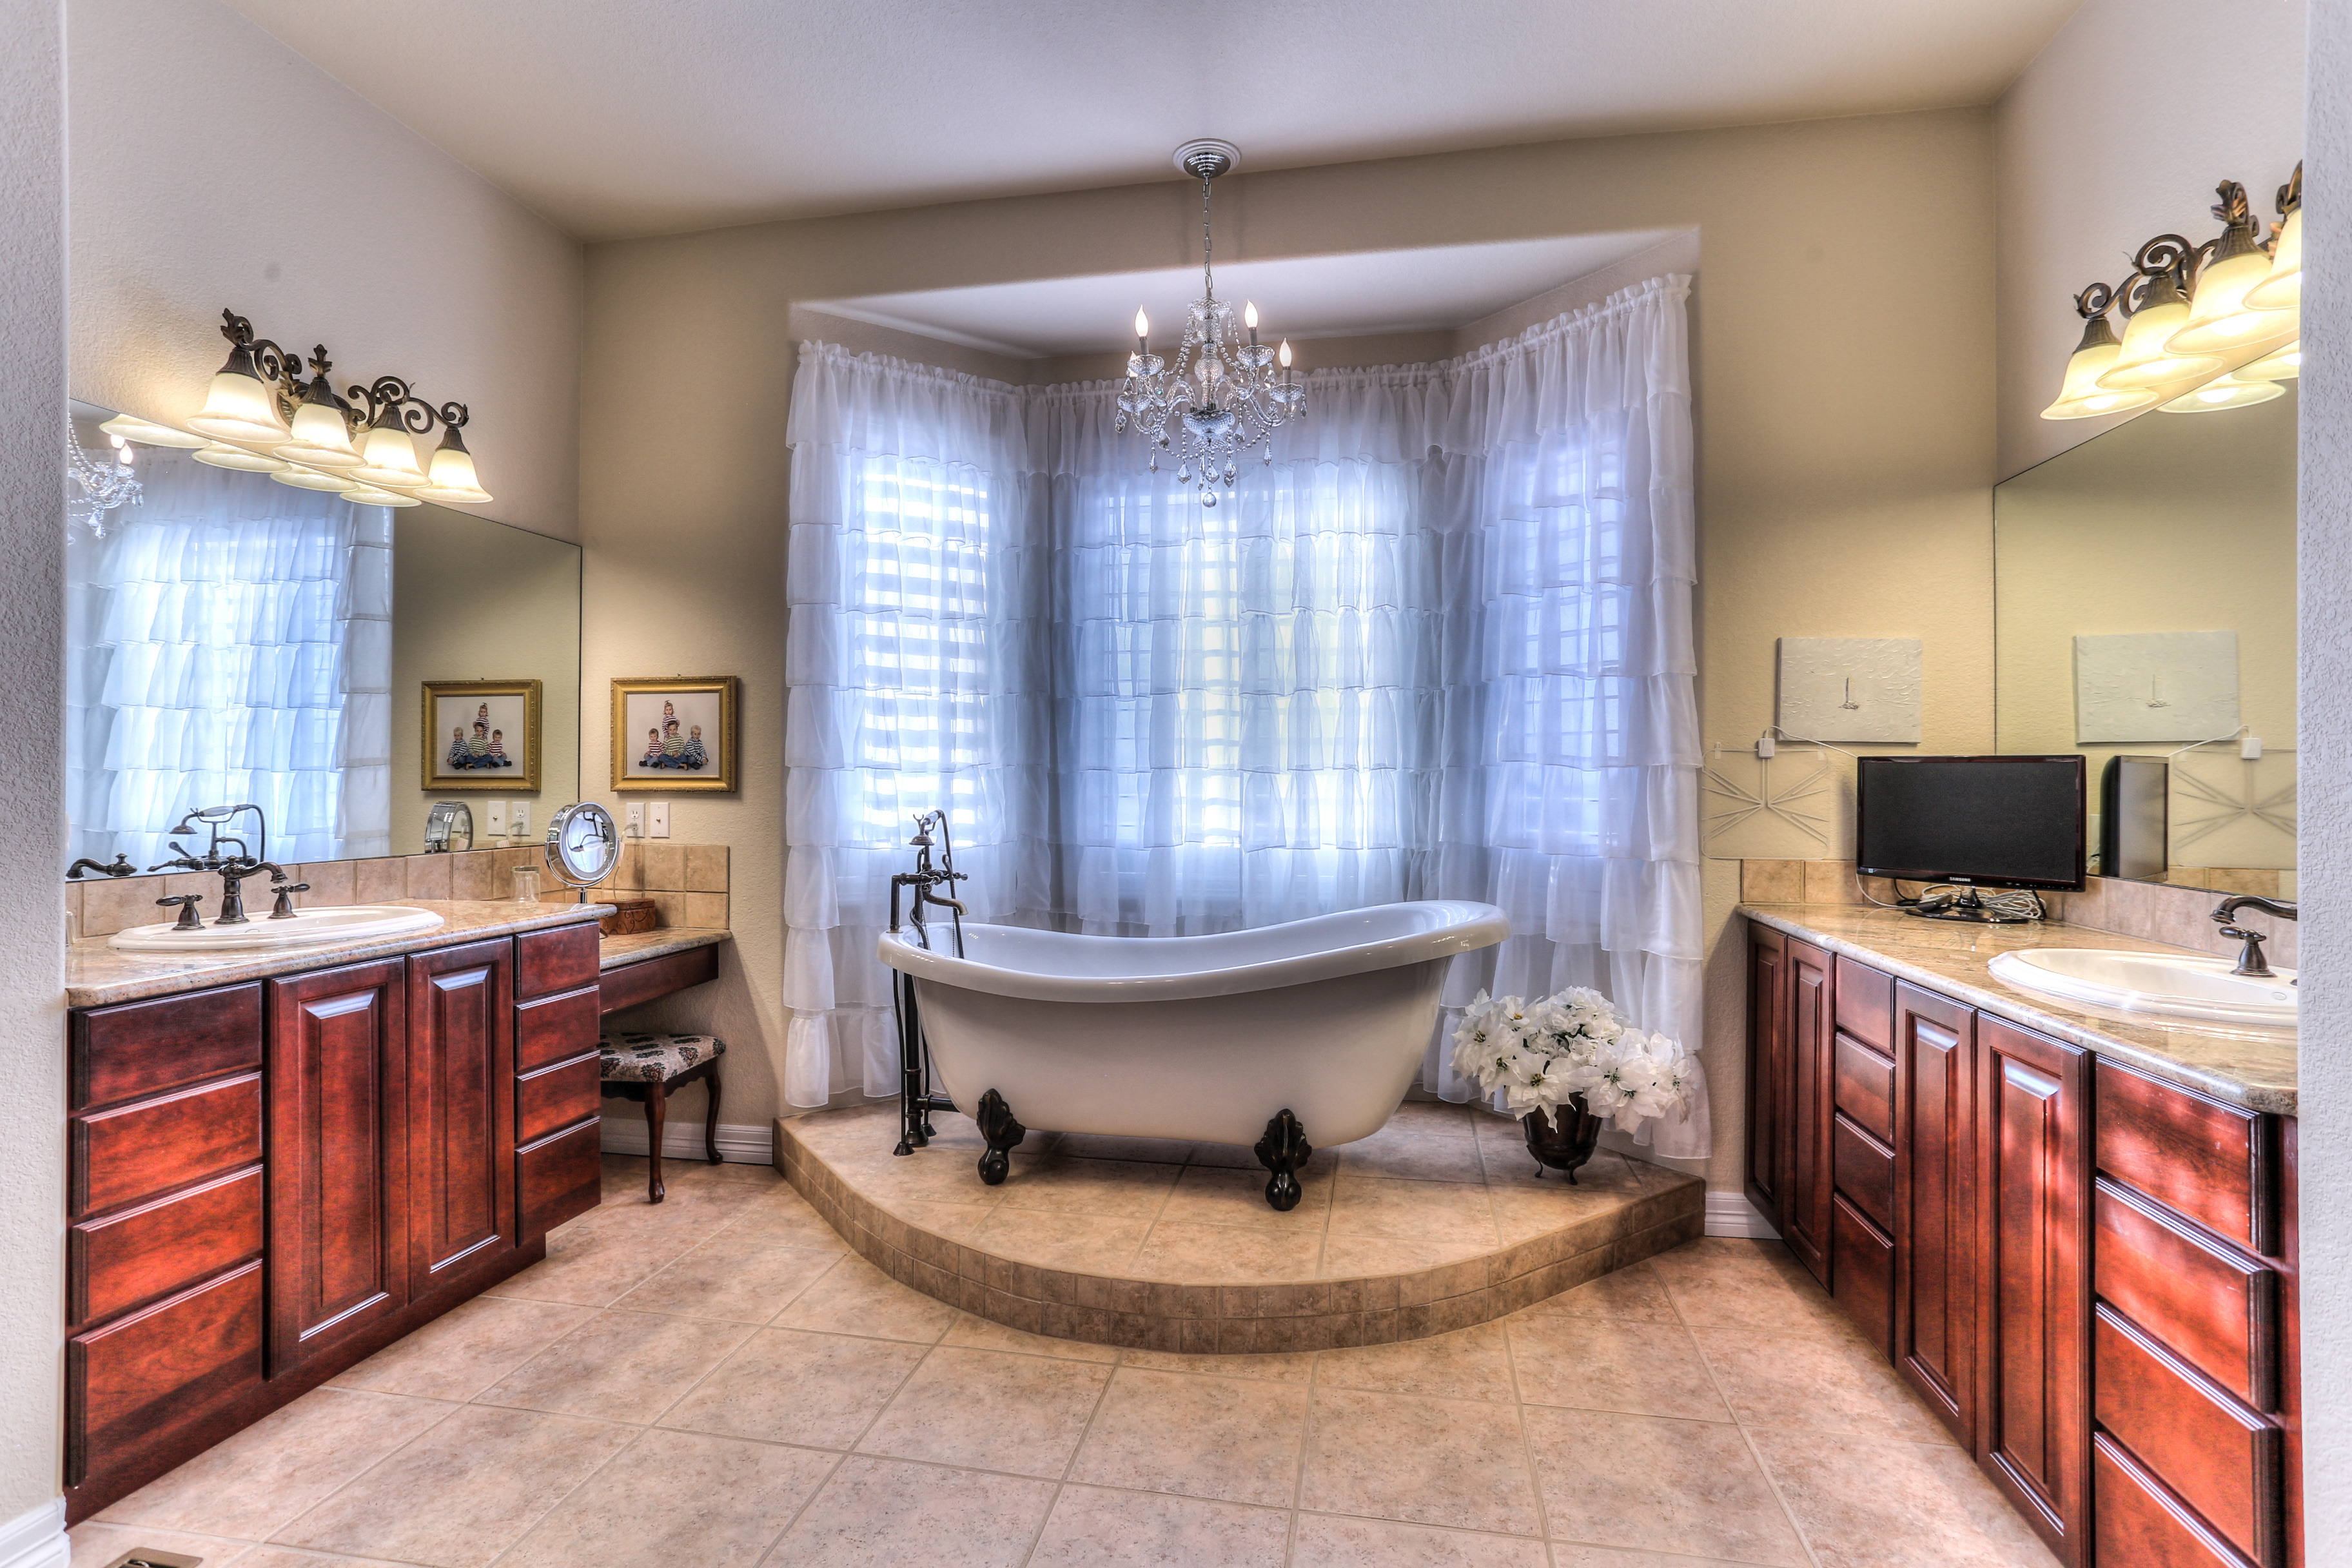 26060 E Phillips Place Aurora, CO 80016 is Picture Perf